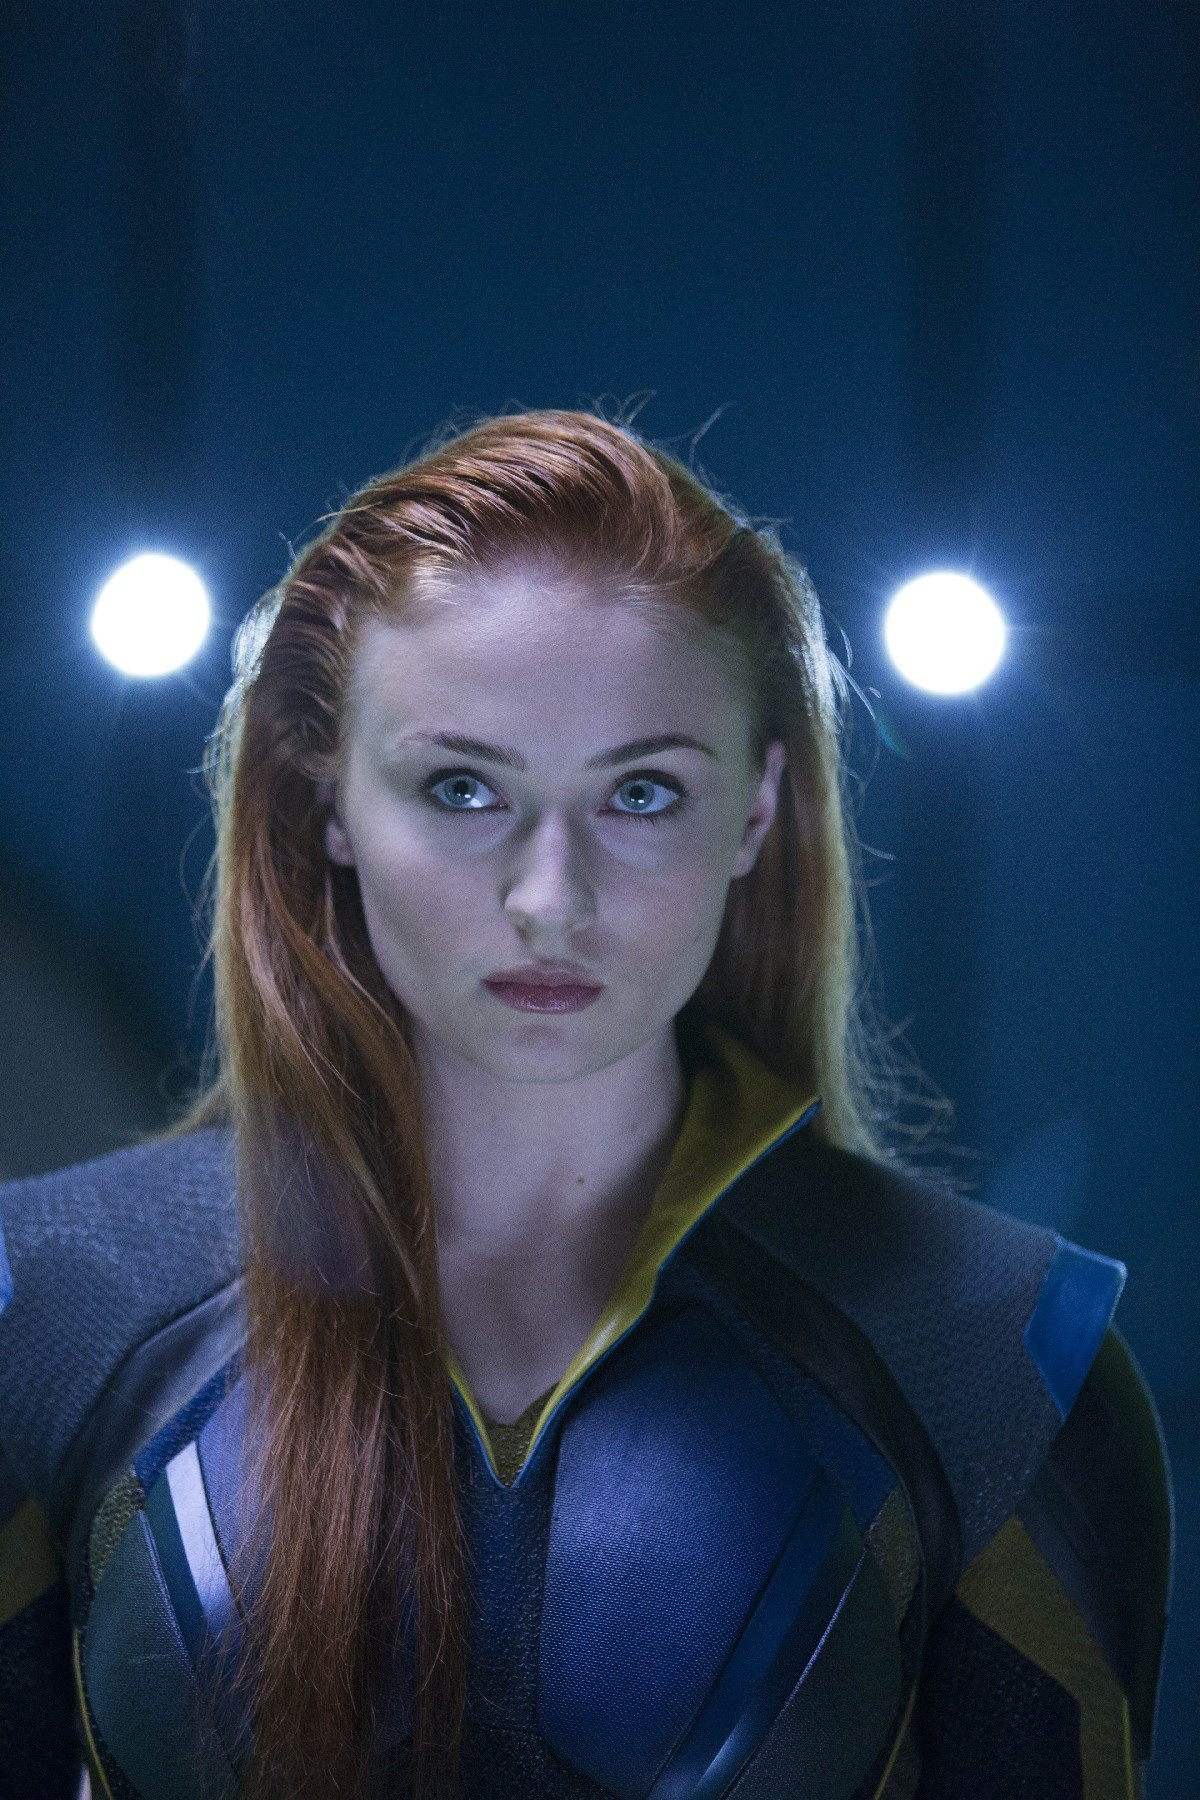 Global Box Office Dominated by X-Men: Apocalypse